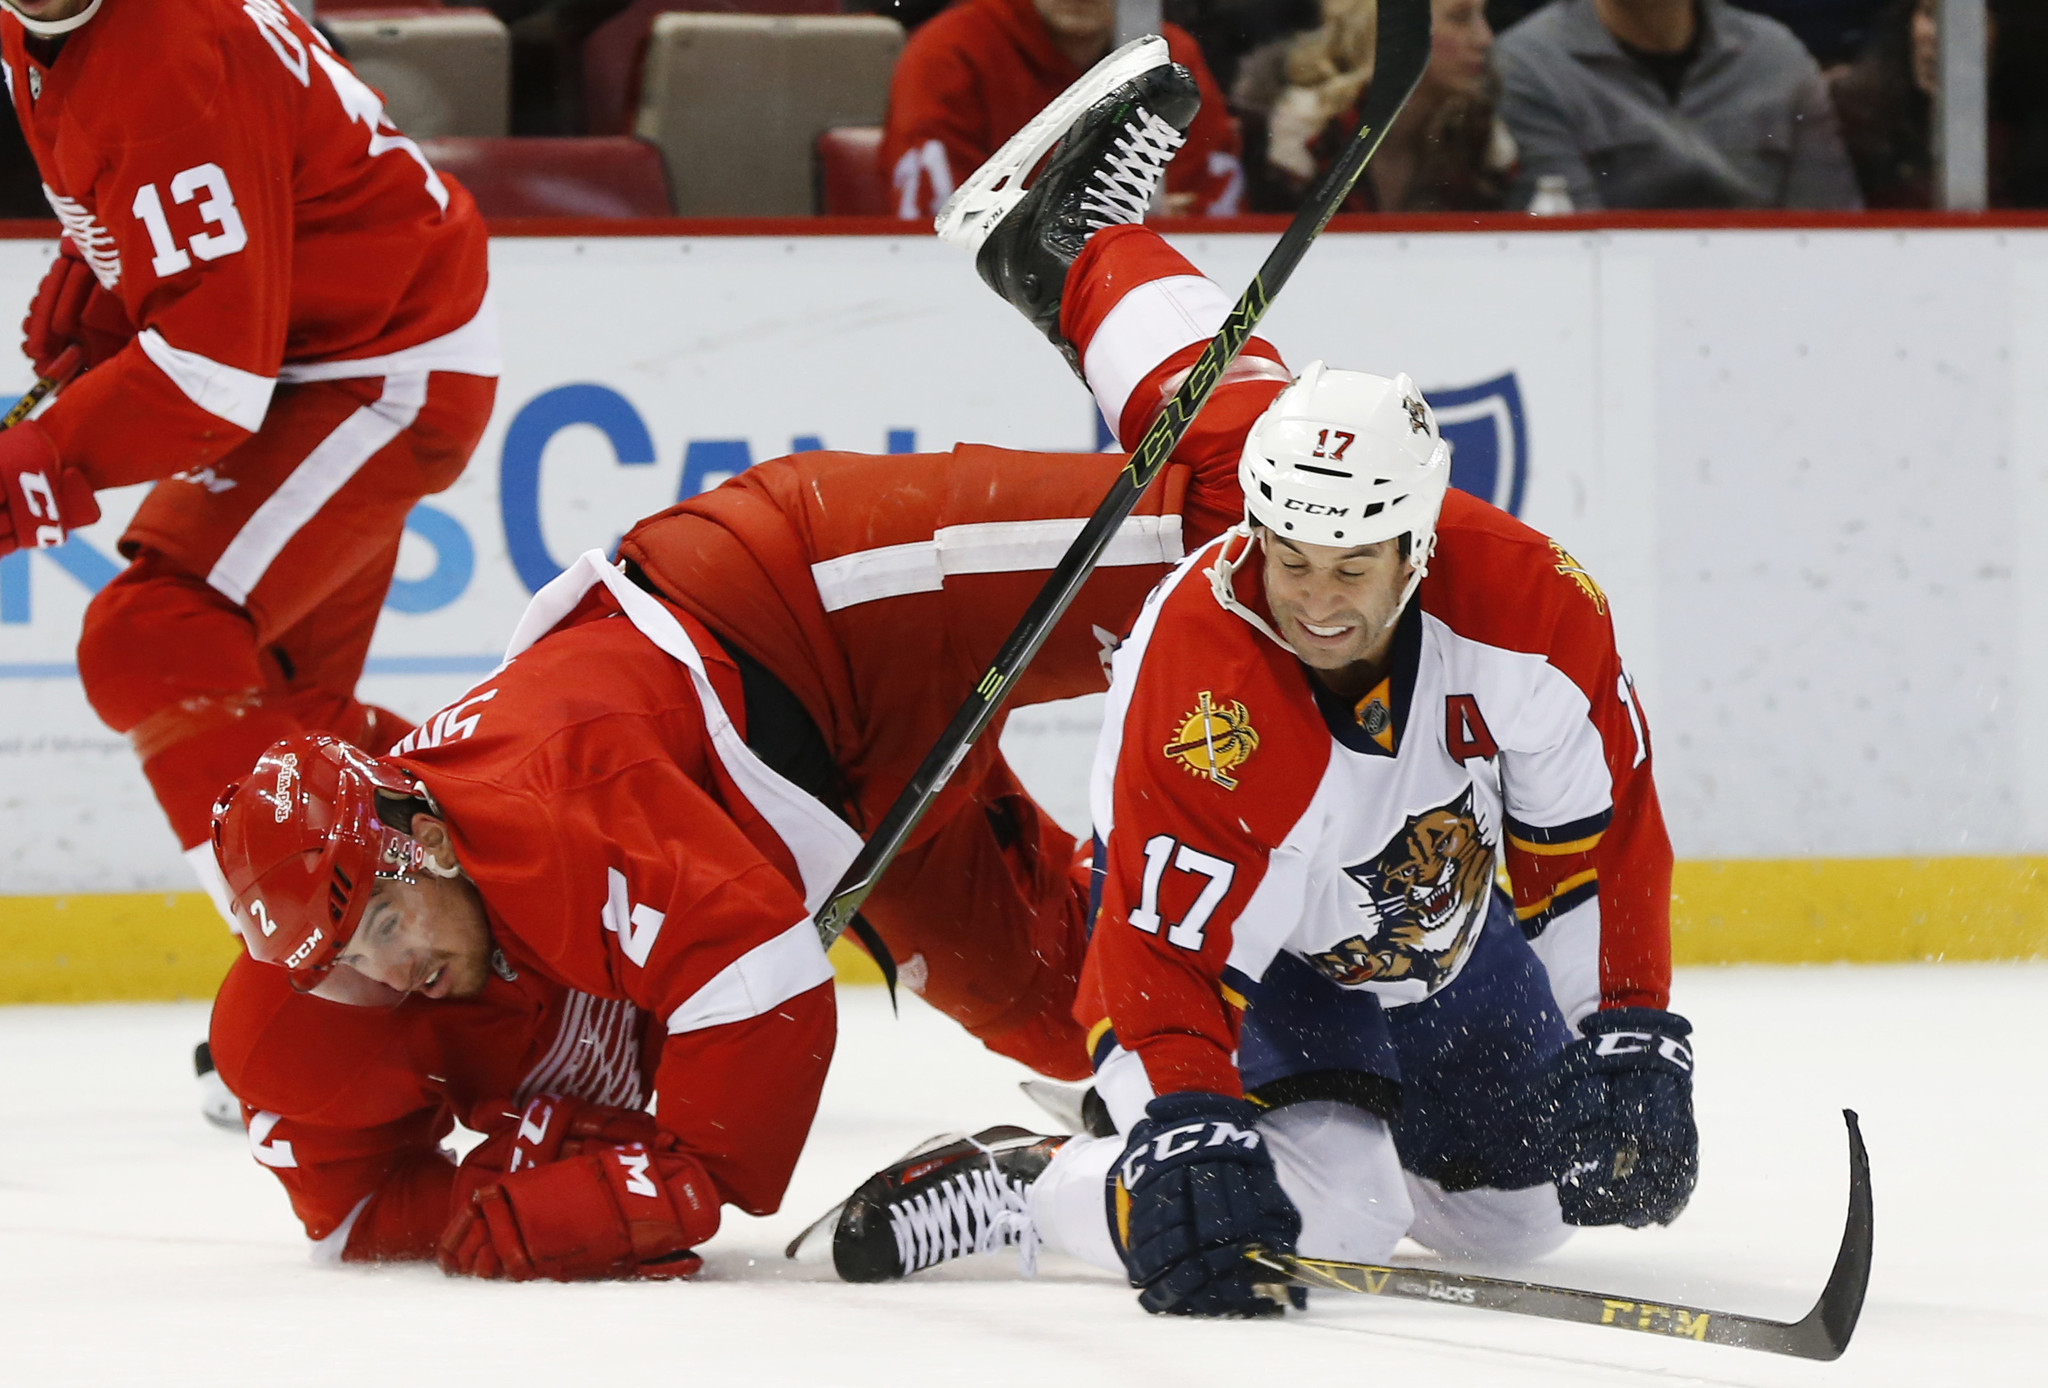 Sfl-photos-panthers-at-red-wings-20160208